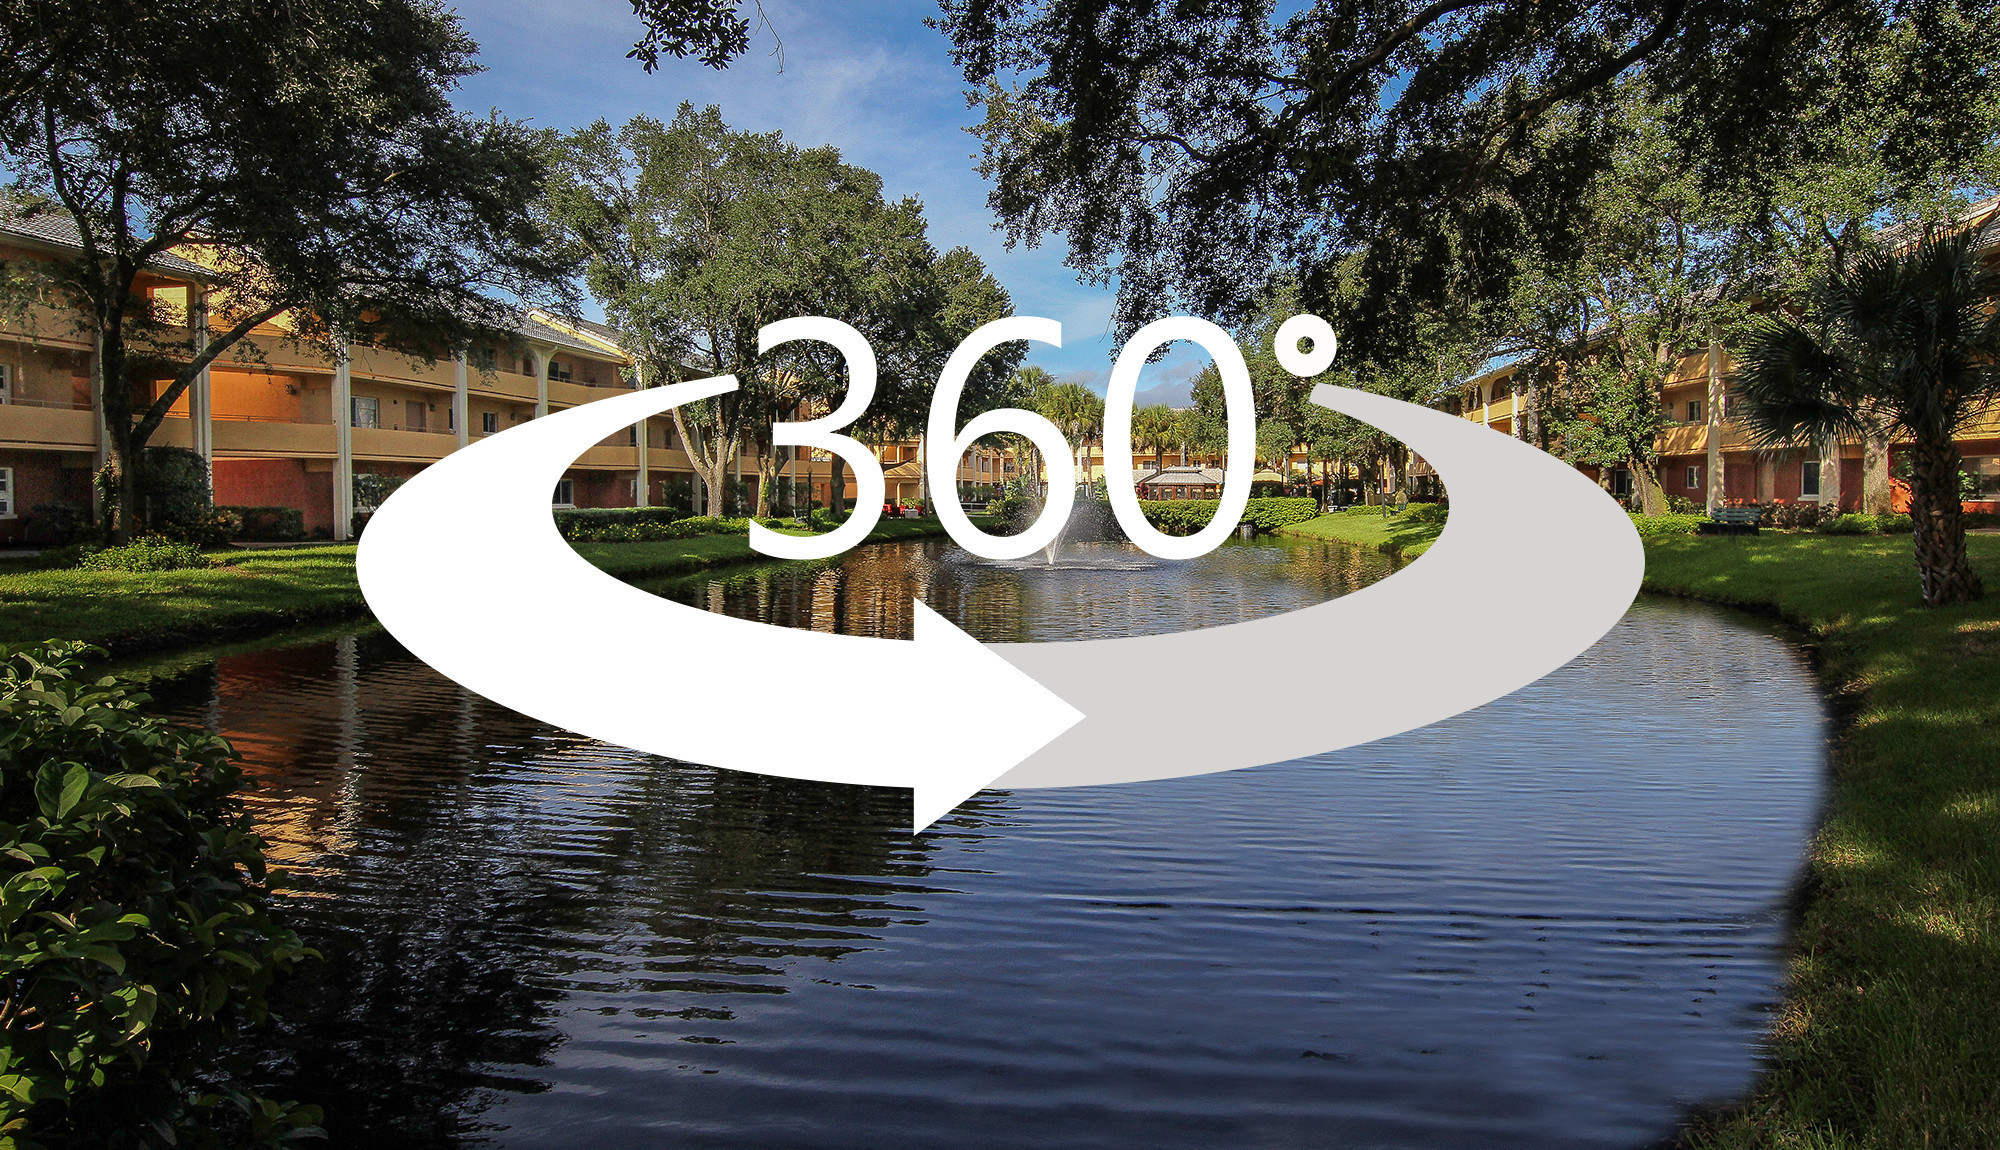 360-degree virtual tour of villa amenities at our leisure resort near Sea World | Westgate Leisure Resort | Westgate Resorts